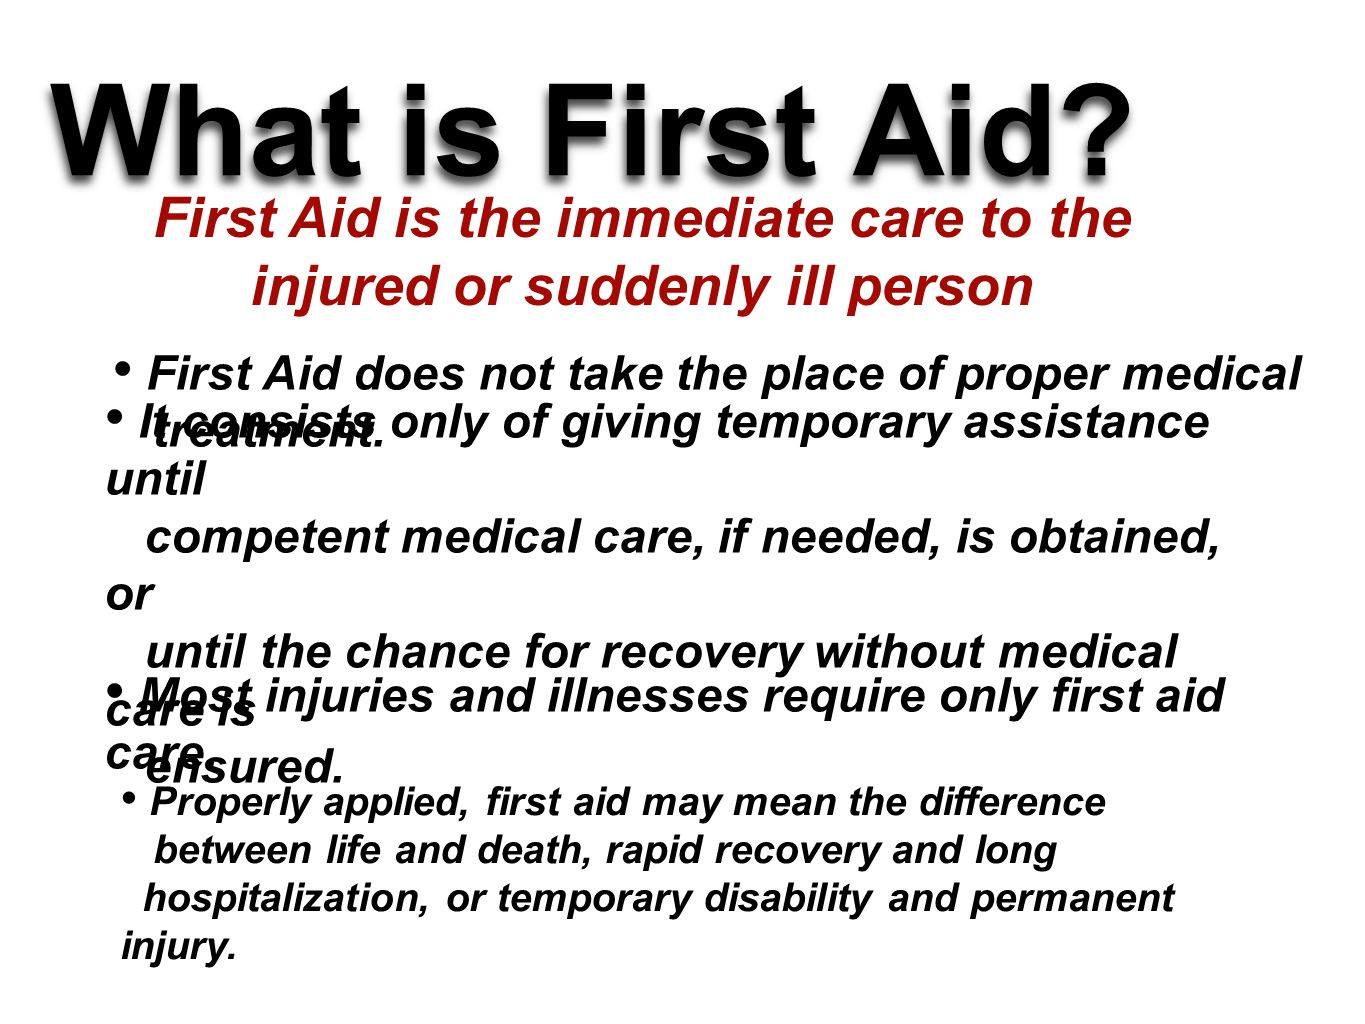 First Aid is the immediate care to the injured or suddenly ill person